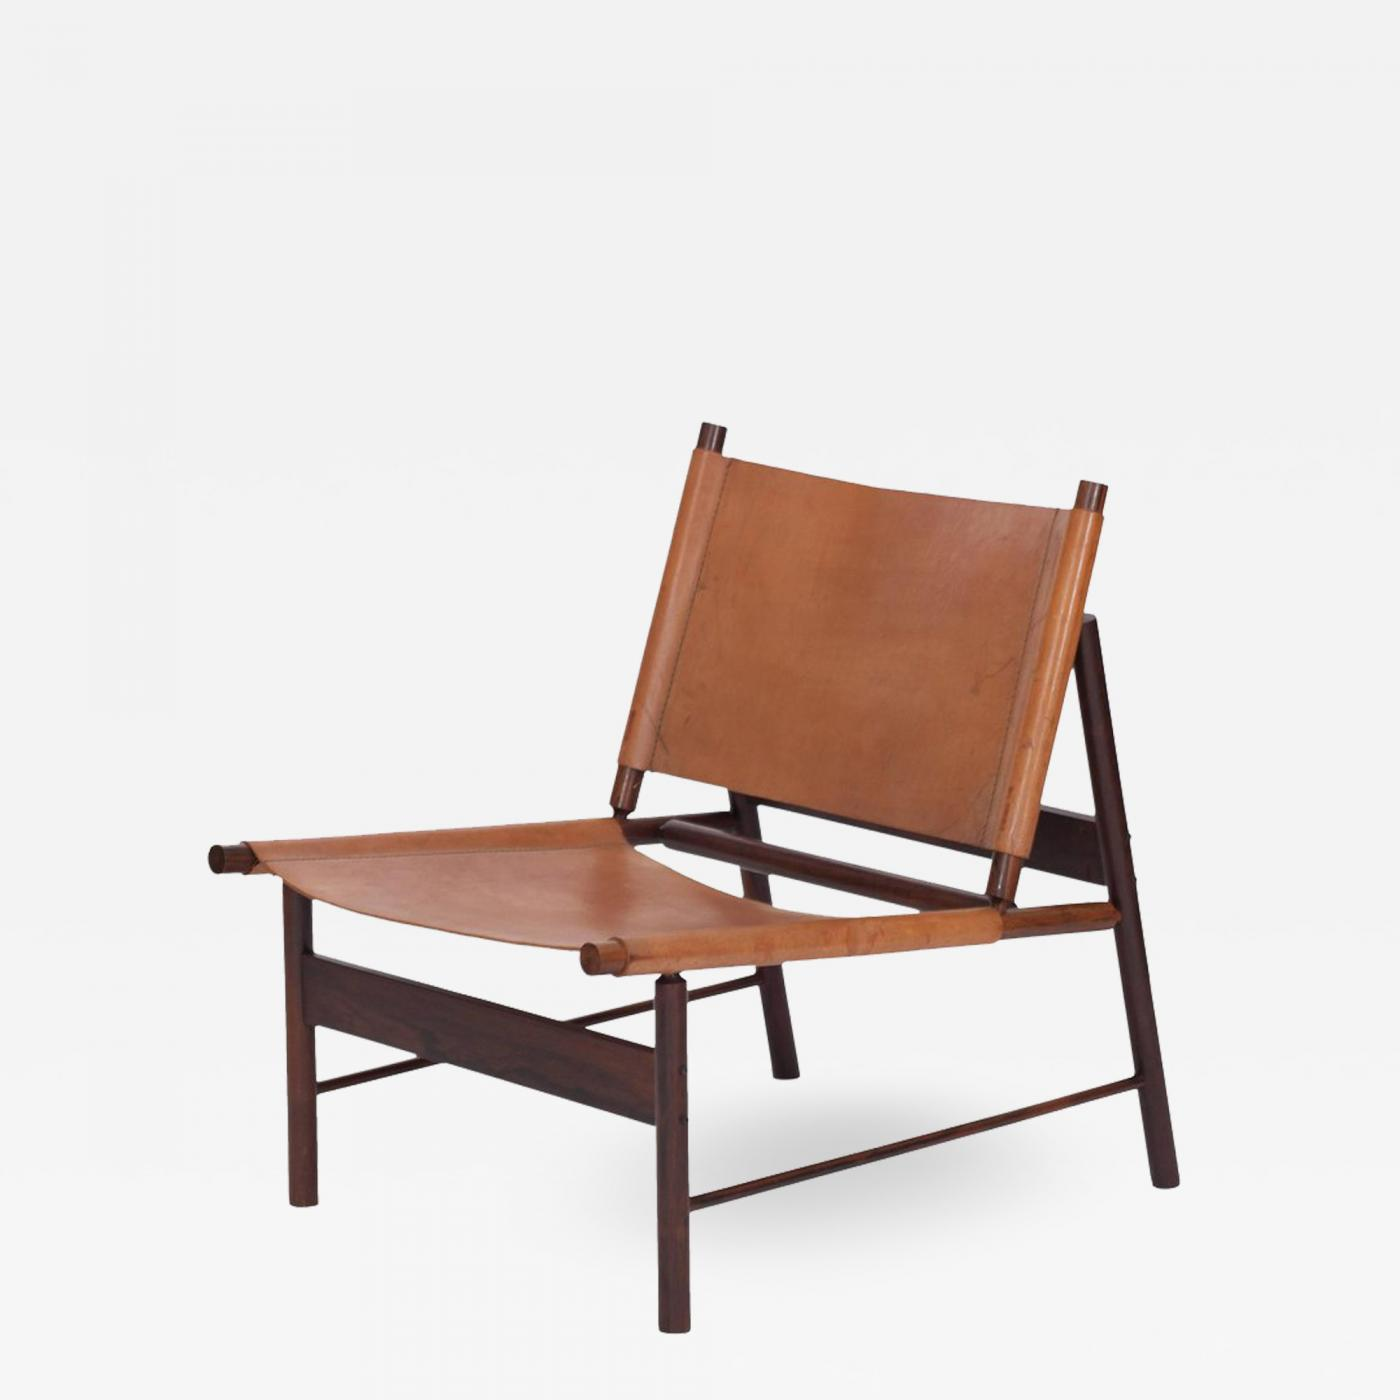 Rosewood and cognac leather lounge chair by jorge zalszupin brazil 1955